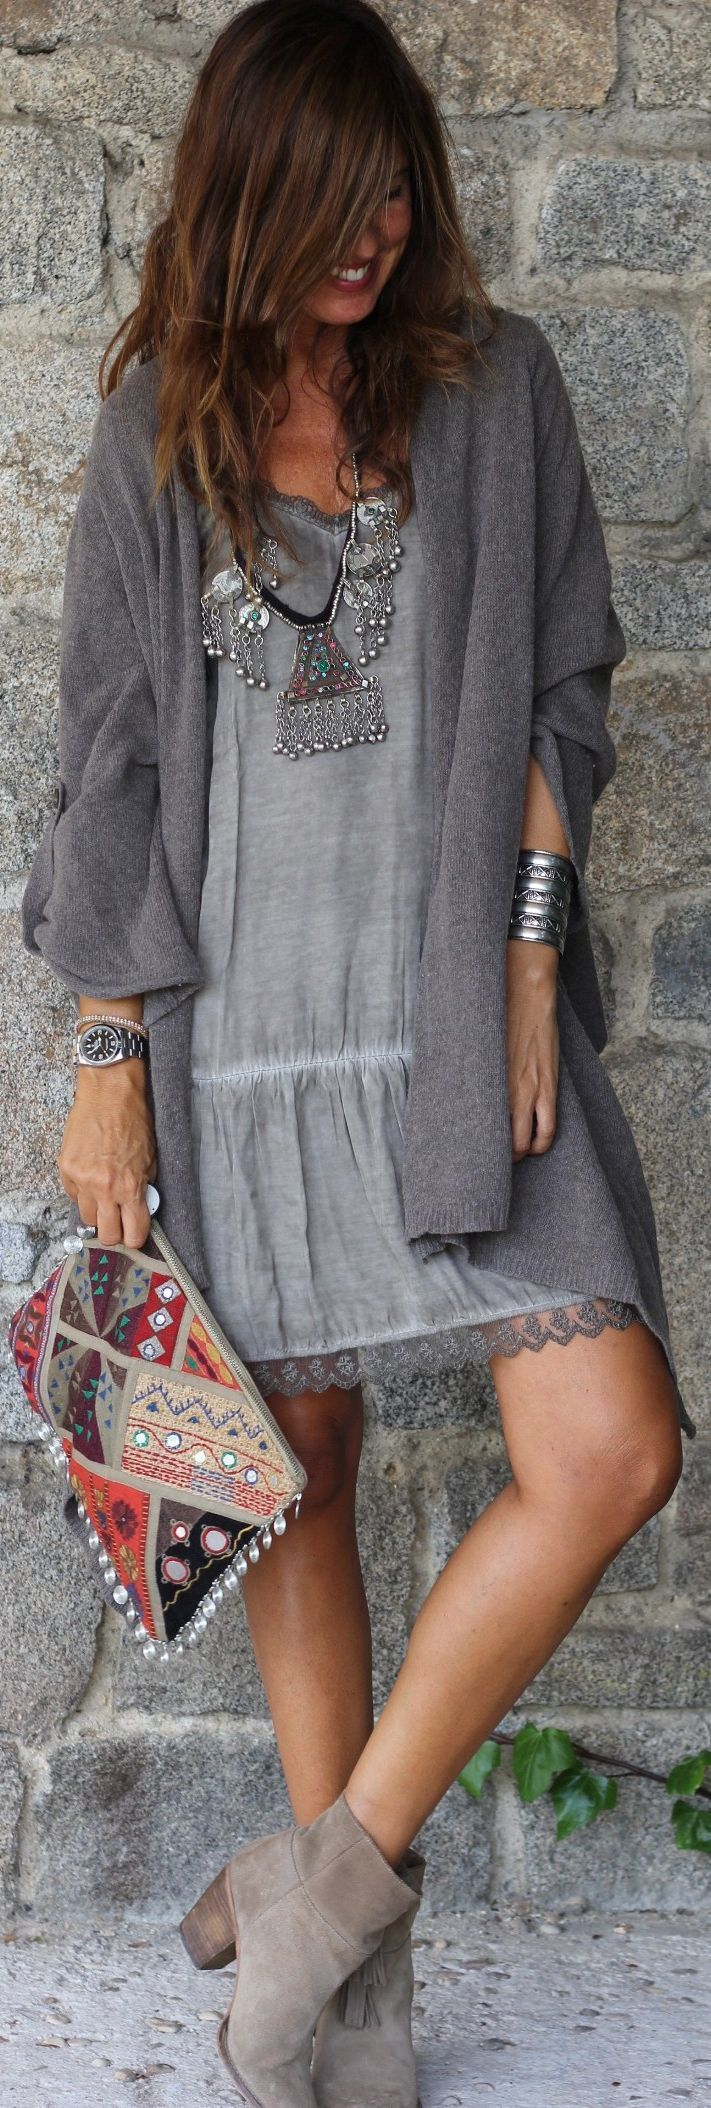 dress cardigan and shoes in grey